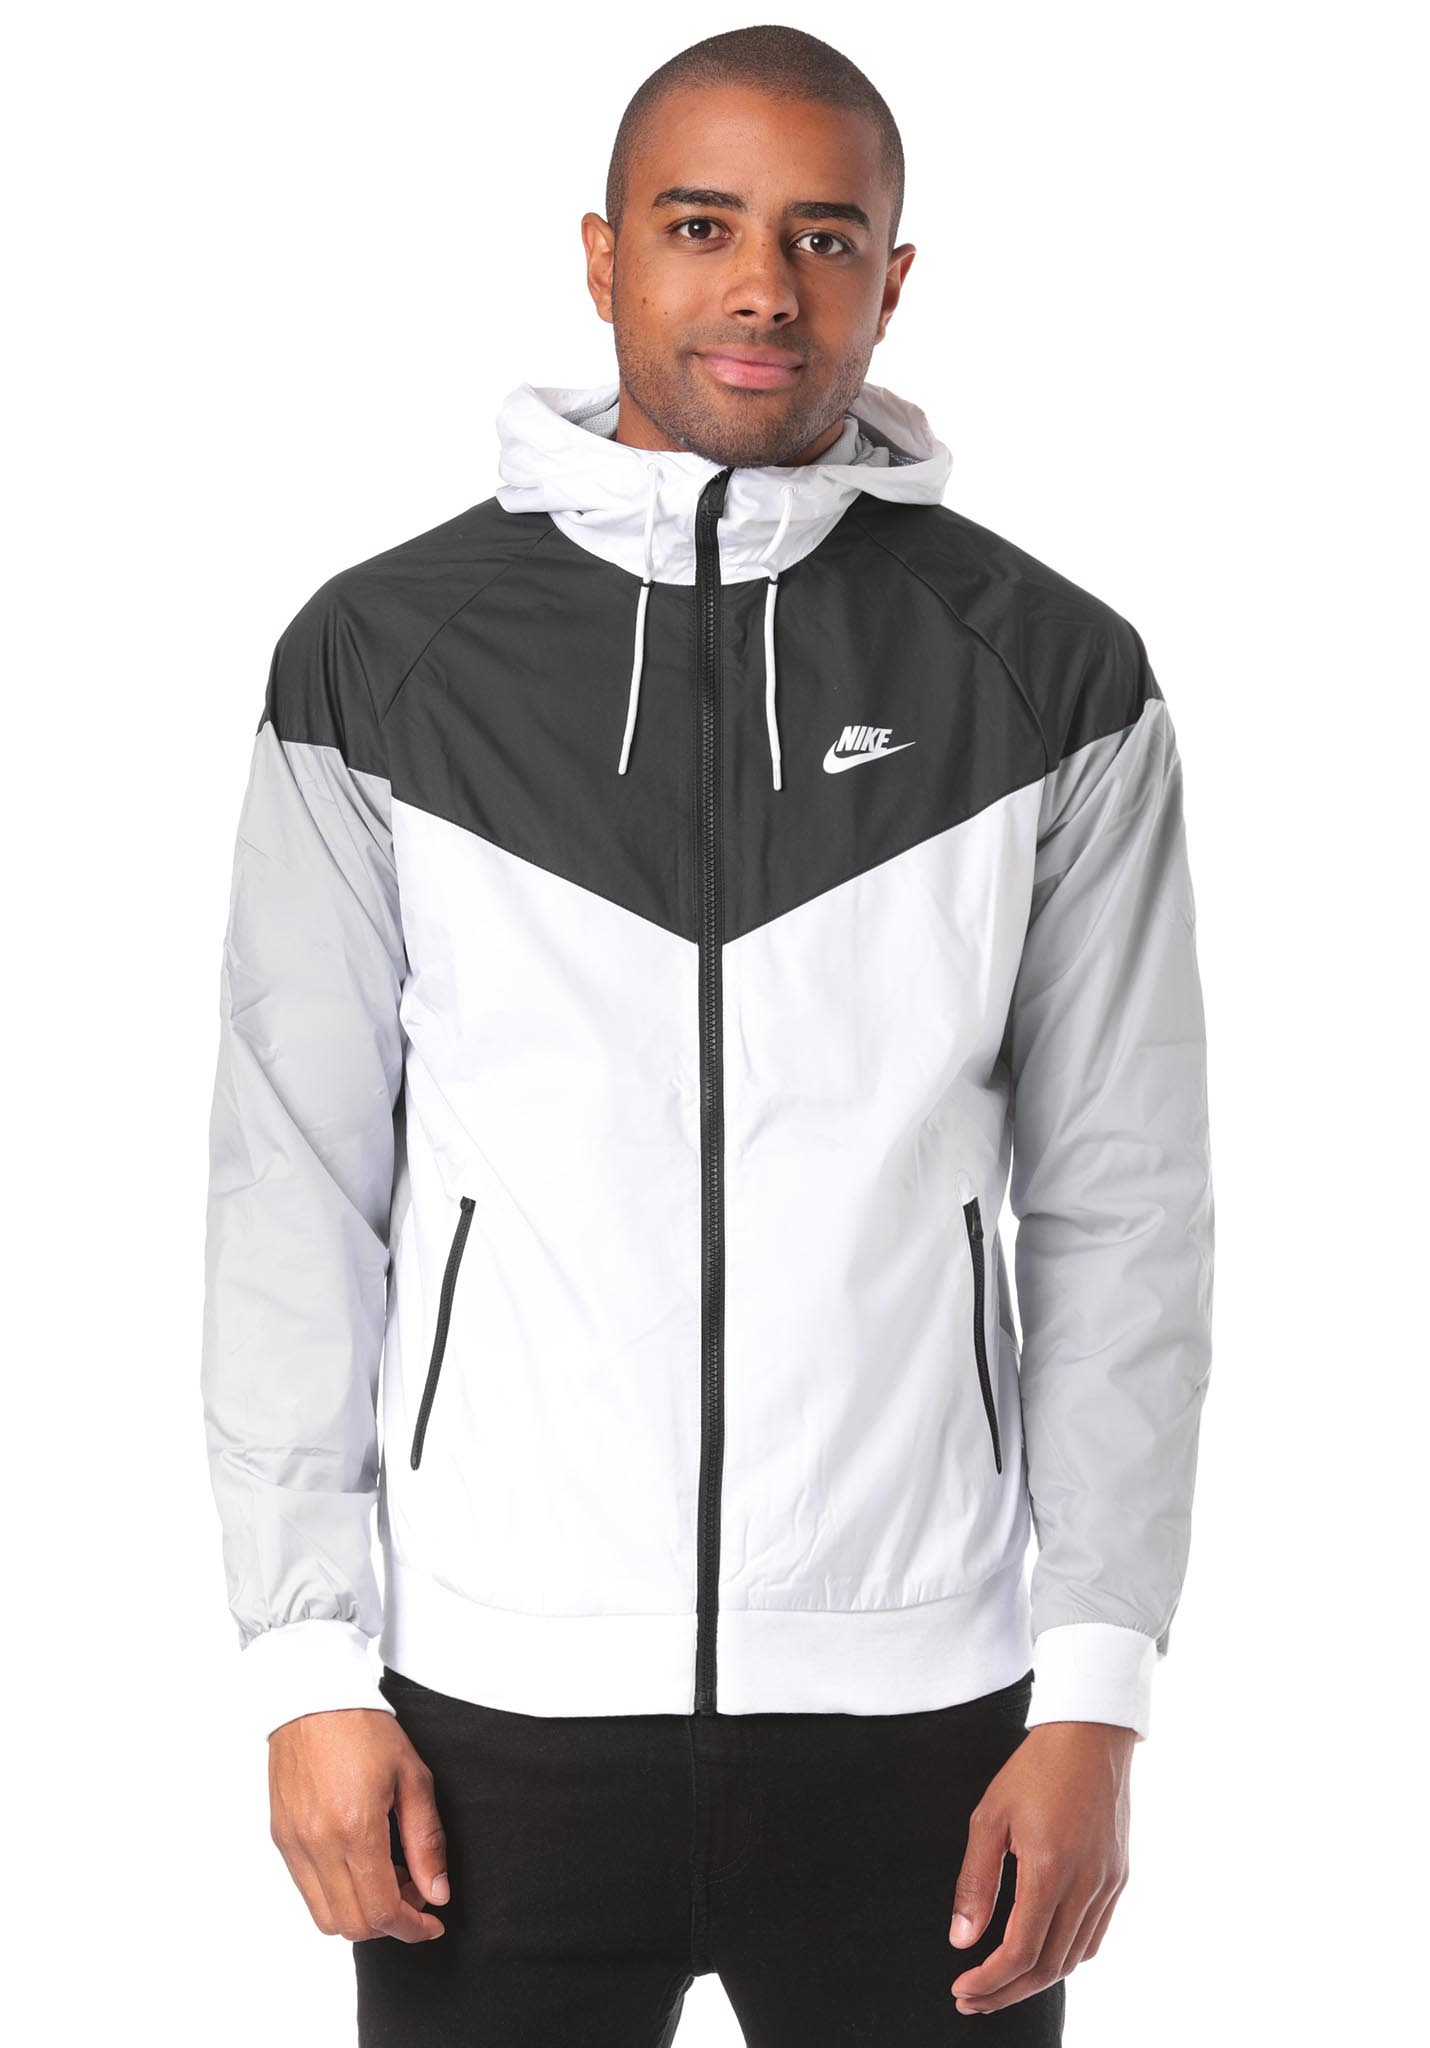 d90b00fd5 NIKE SPORTSWEAR Windrunner - Jacket for Men - Black - Planet Sports